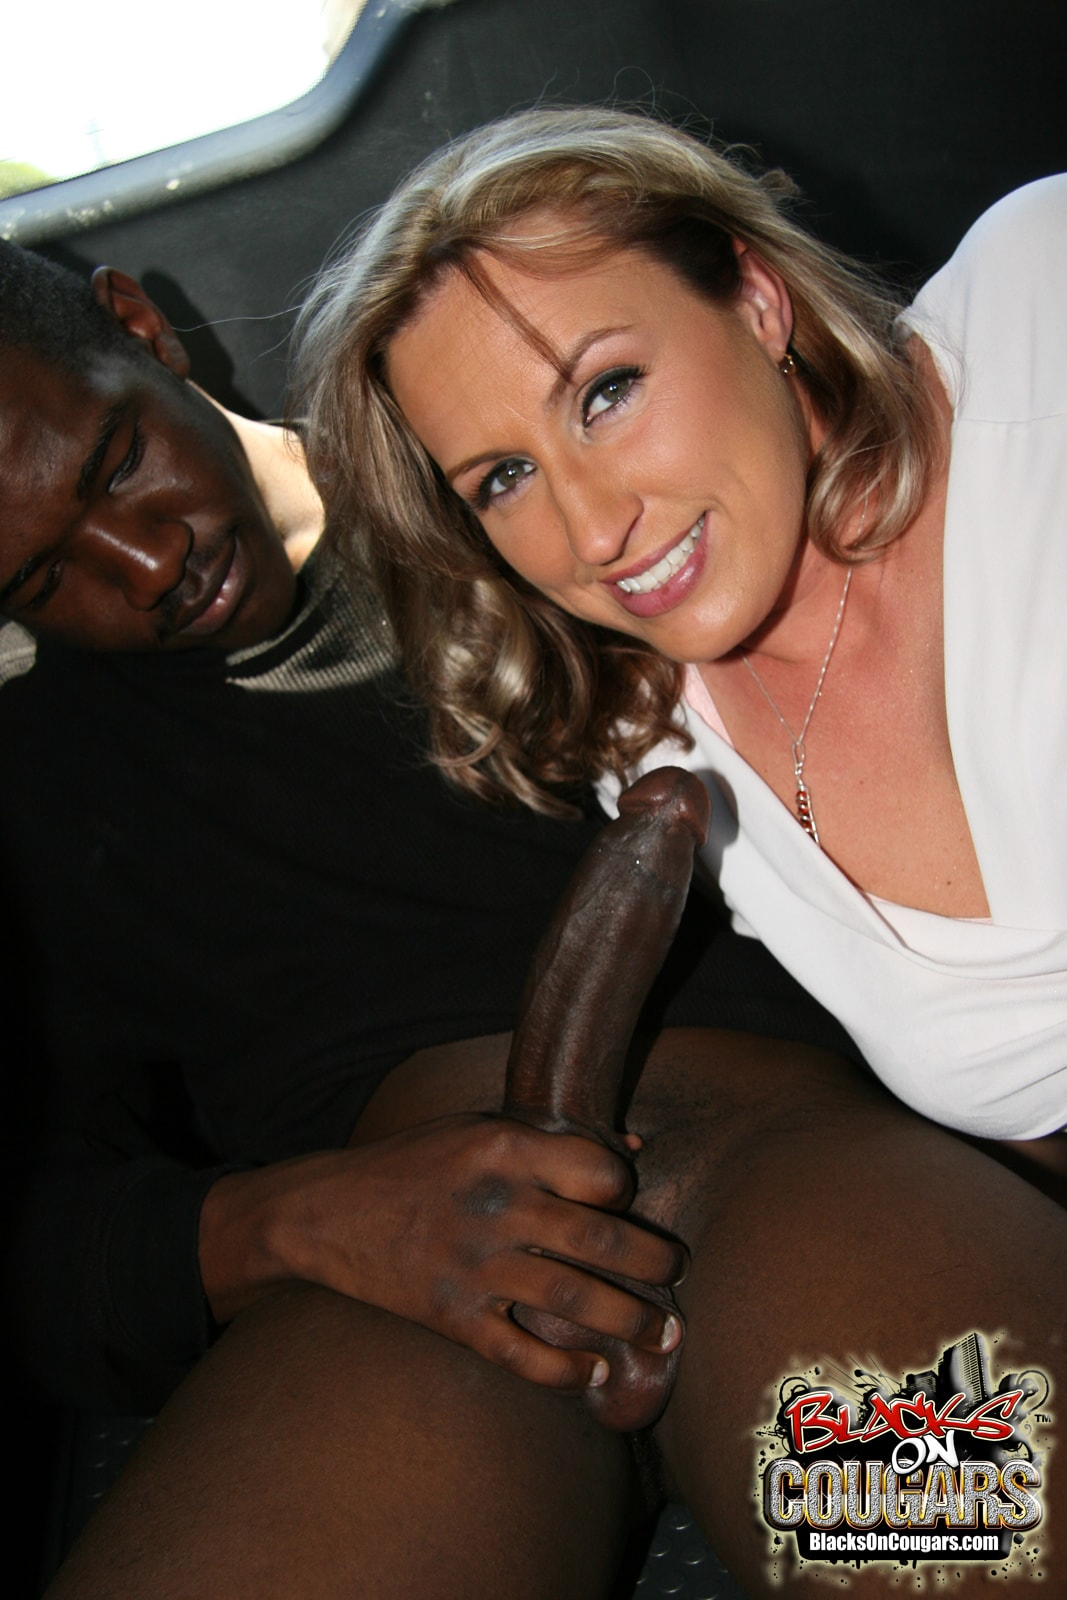 Dogfart '- Blacks On Cougars' starring Joey Lynn (Photo 9)